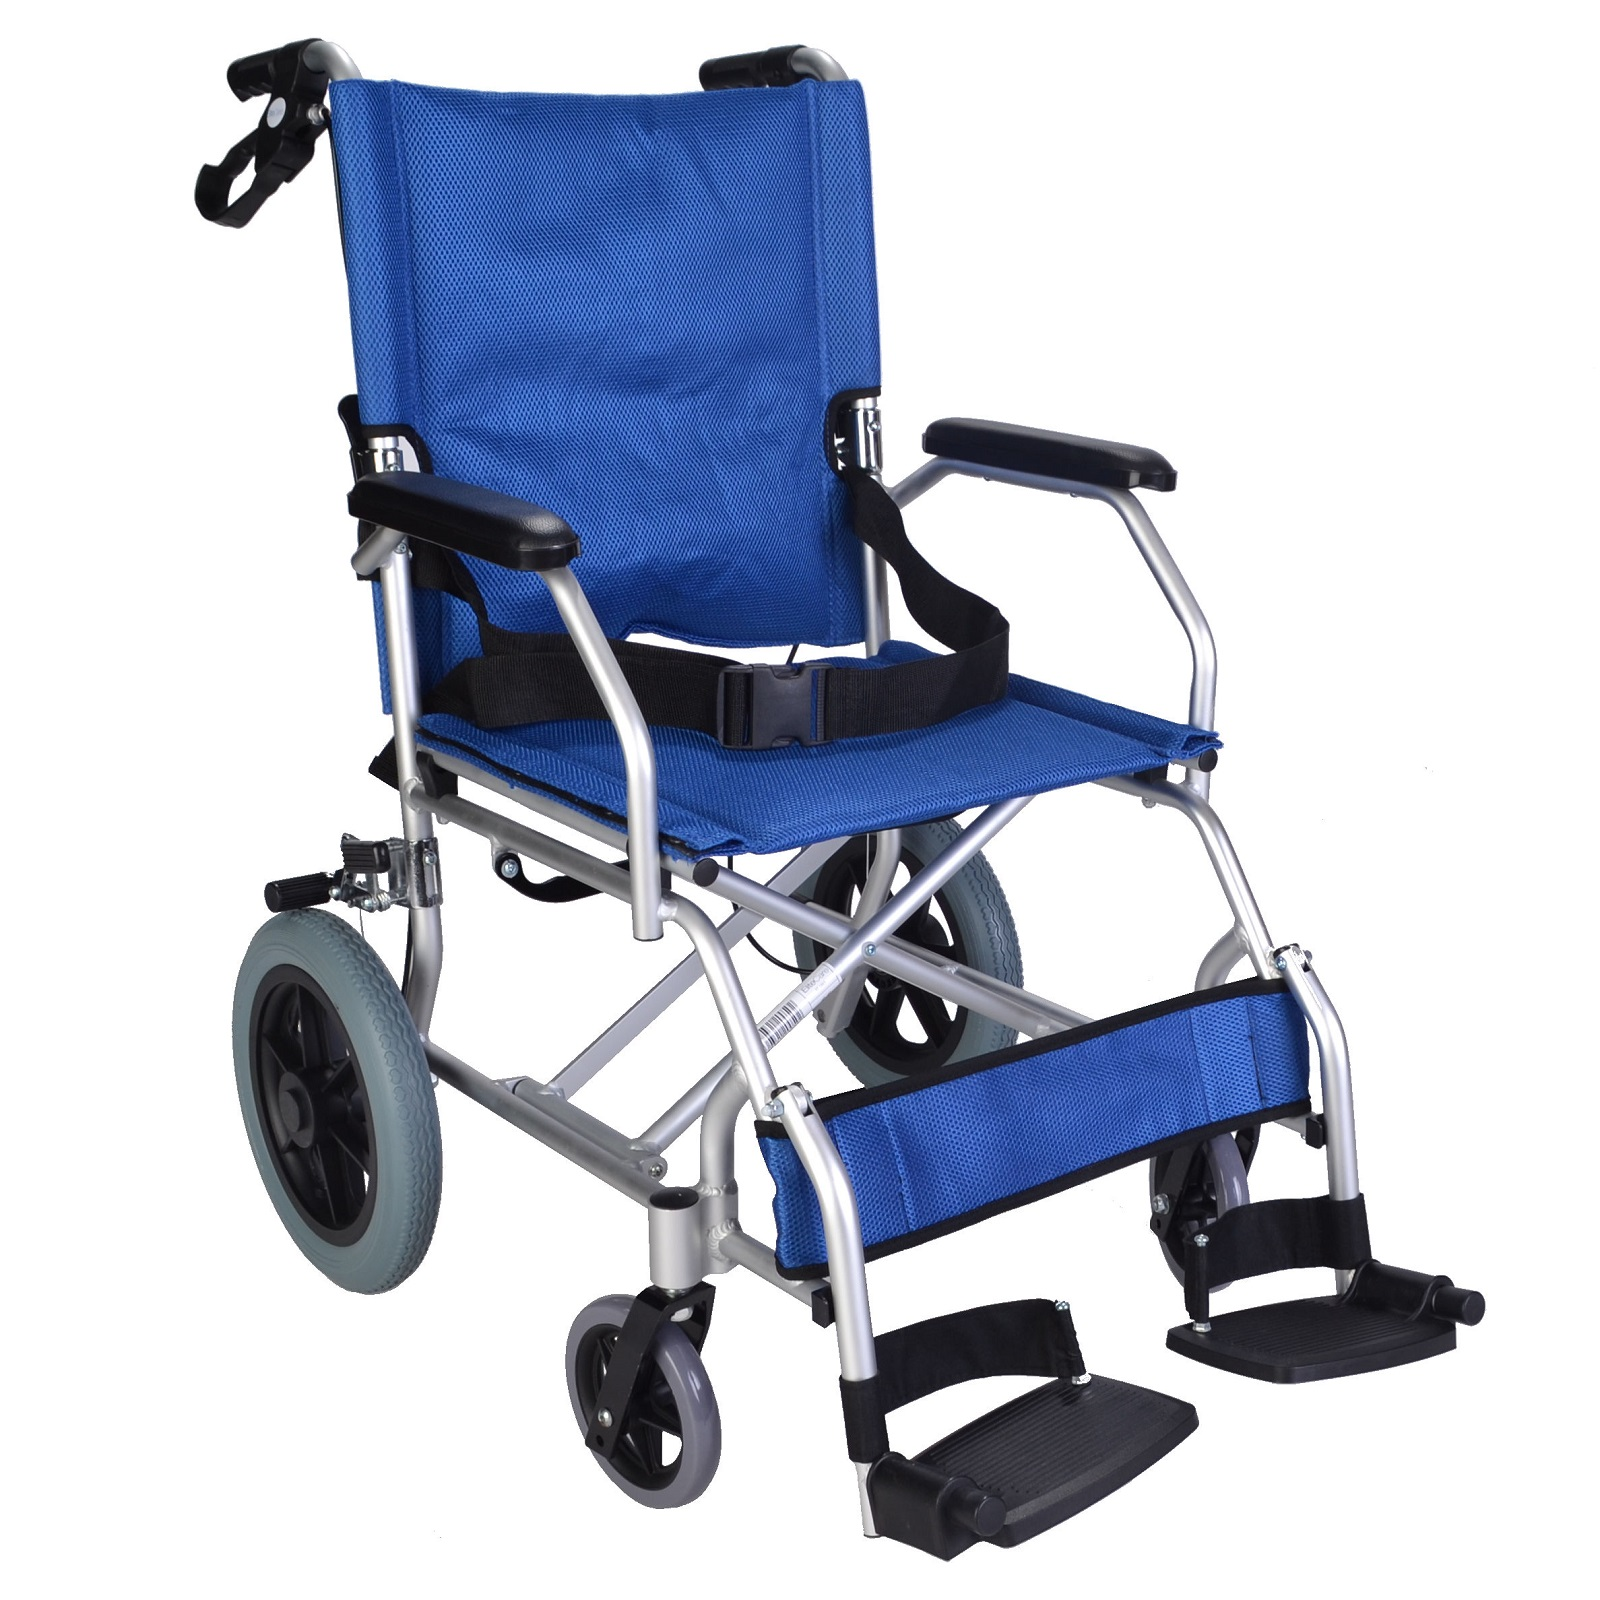 wheelchair foldable rattan restaurant chairs lightweight folding compact ec1863 elite care